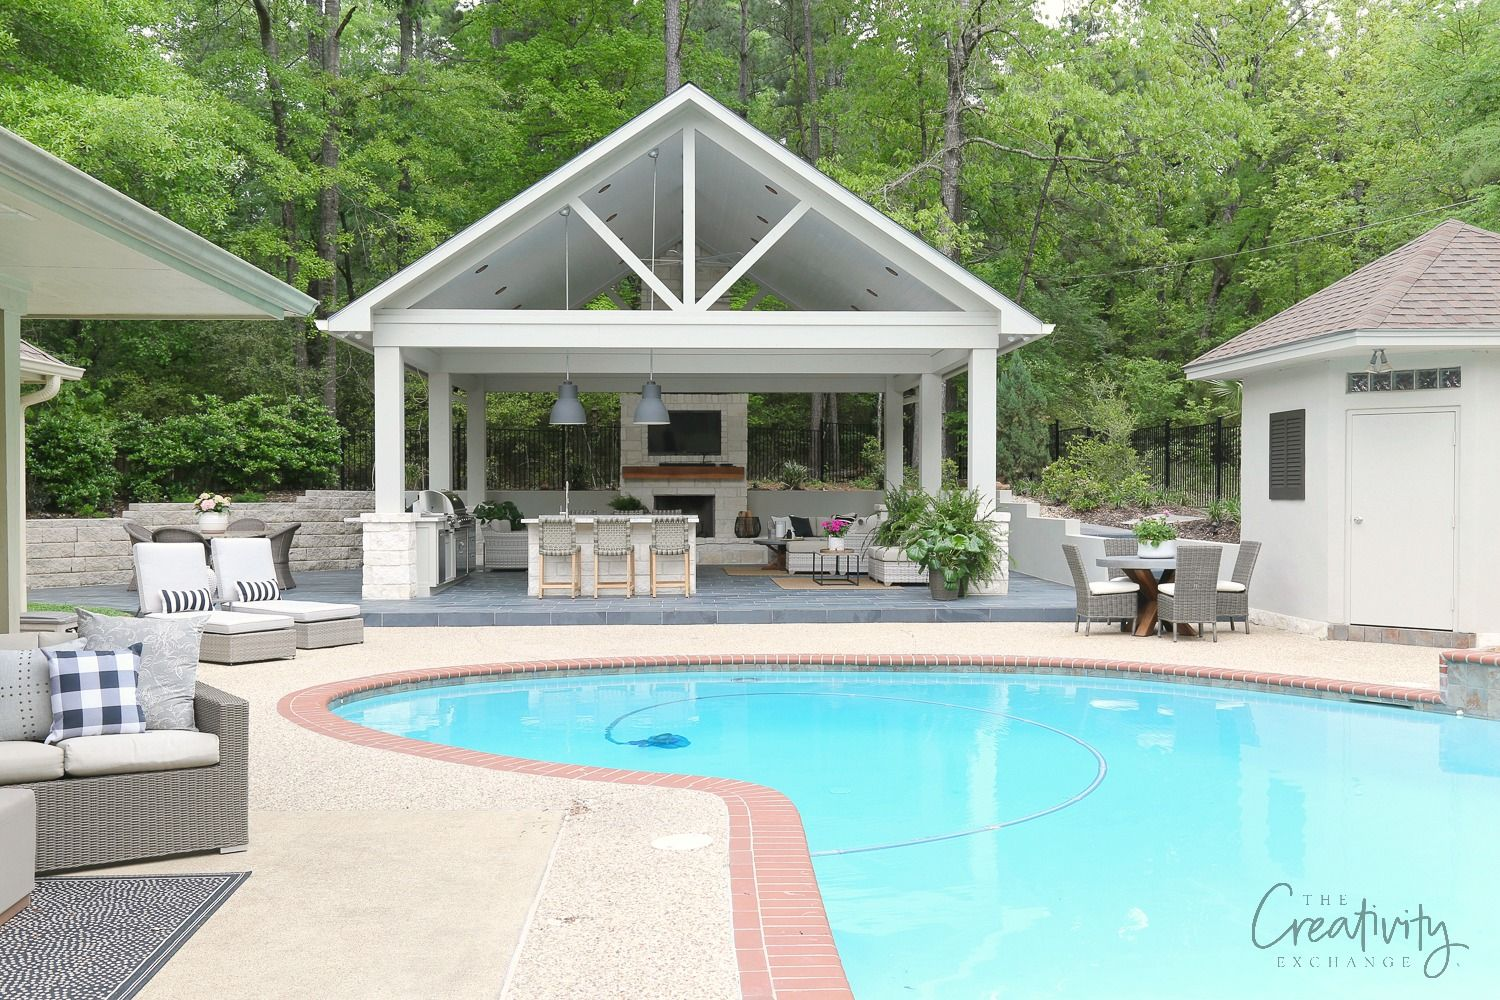 Outdoor Kitchen And Pool House Project Reveal Outdoor Remodel Pool Houses Outdoor Kitchen Design